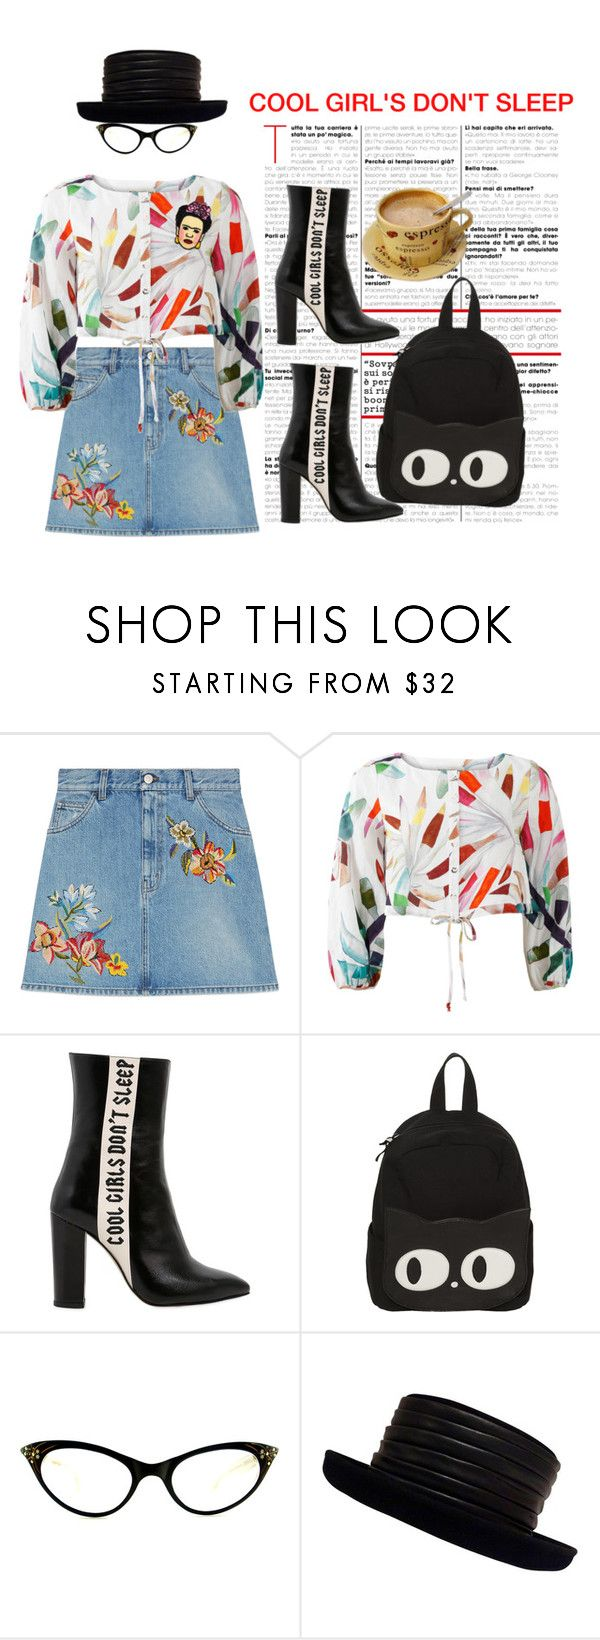 """""""COOL GIRL'S DON'T SLEEP"""" by confusgrk ❤ liked on Polyvore featuring Gucci, Mara Hoffman, Havva, Kokin, polyvorecommunity, polyvoreeditorial and AmiciMei"""